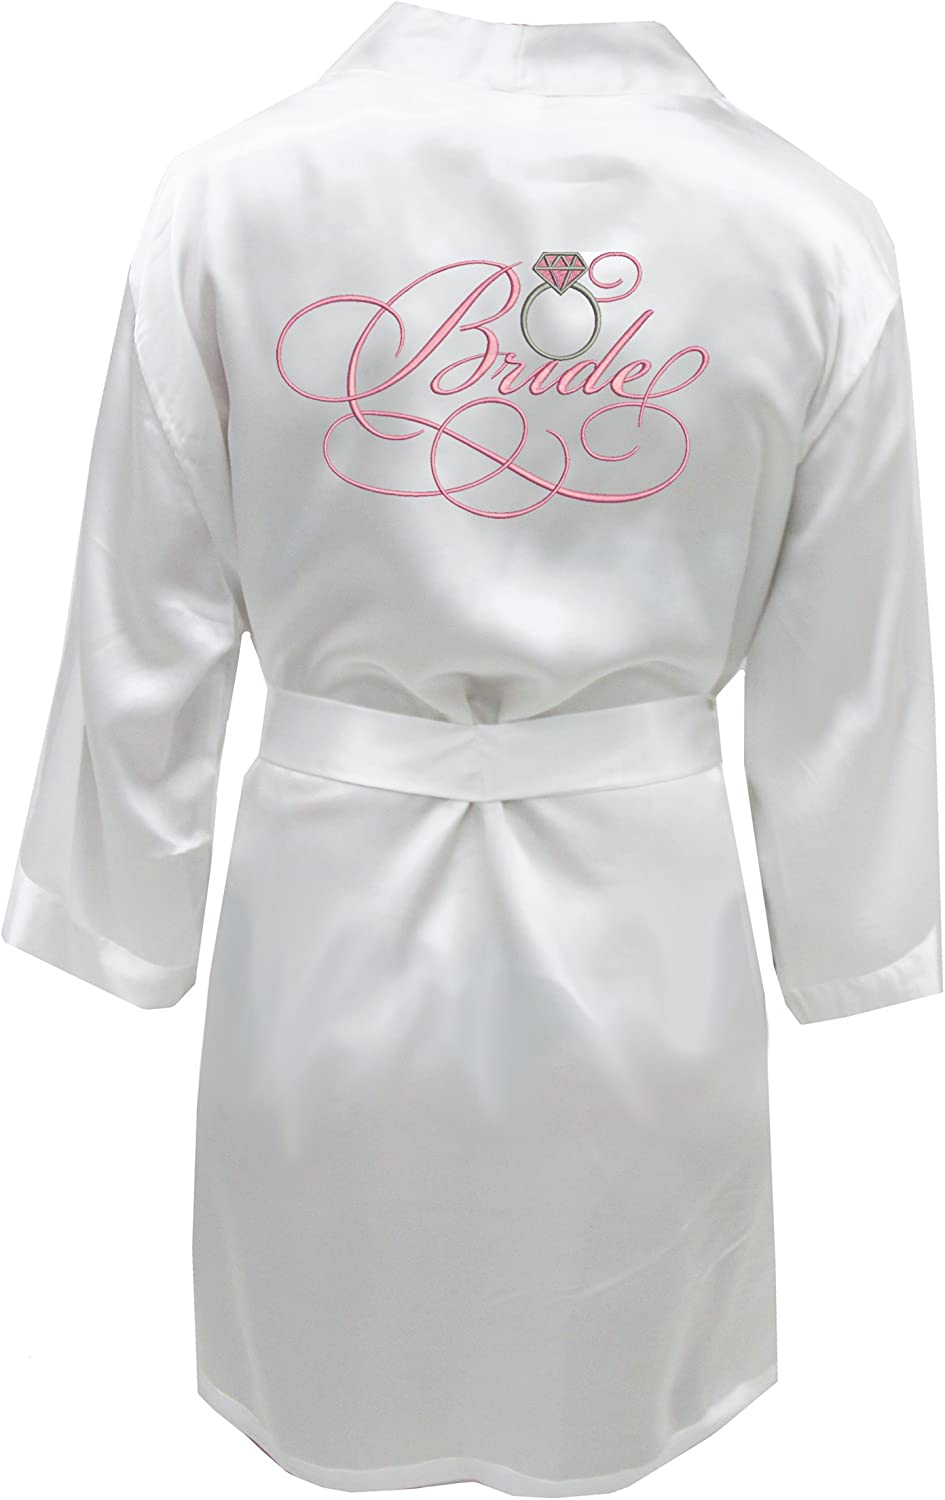 Satin Bridal Robe with Ring  White and Pink